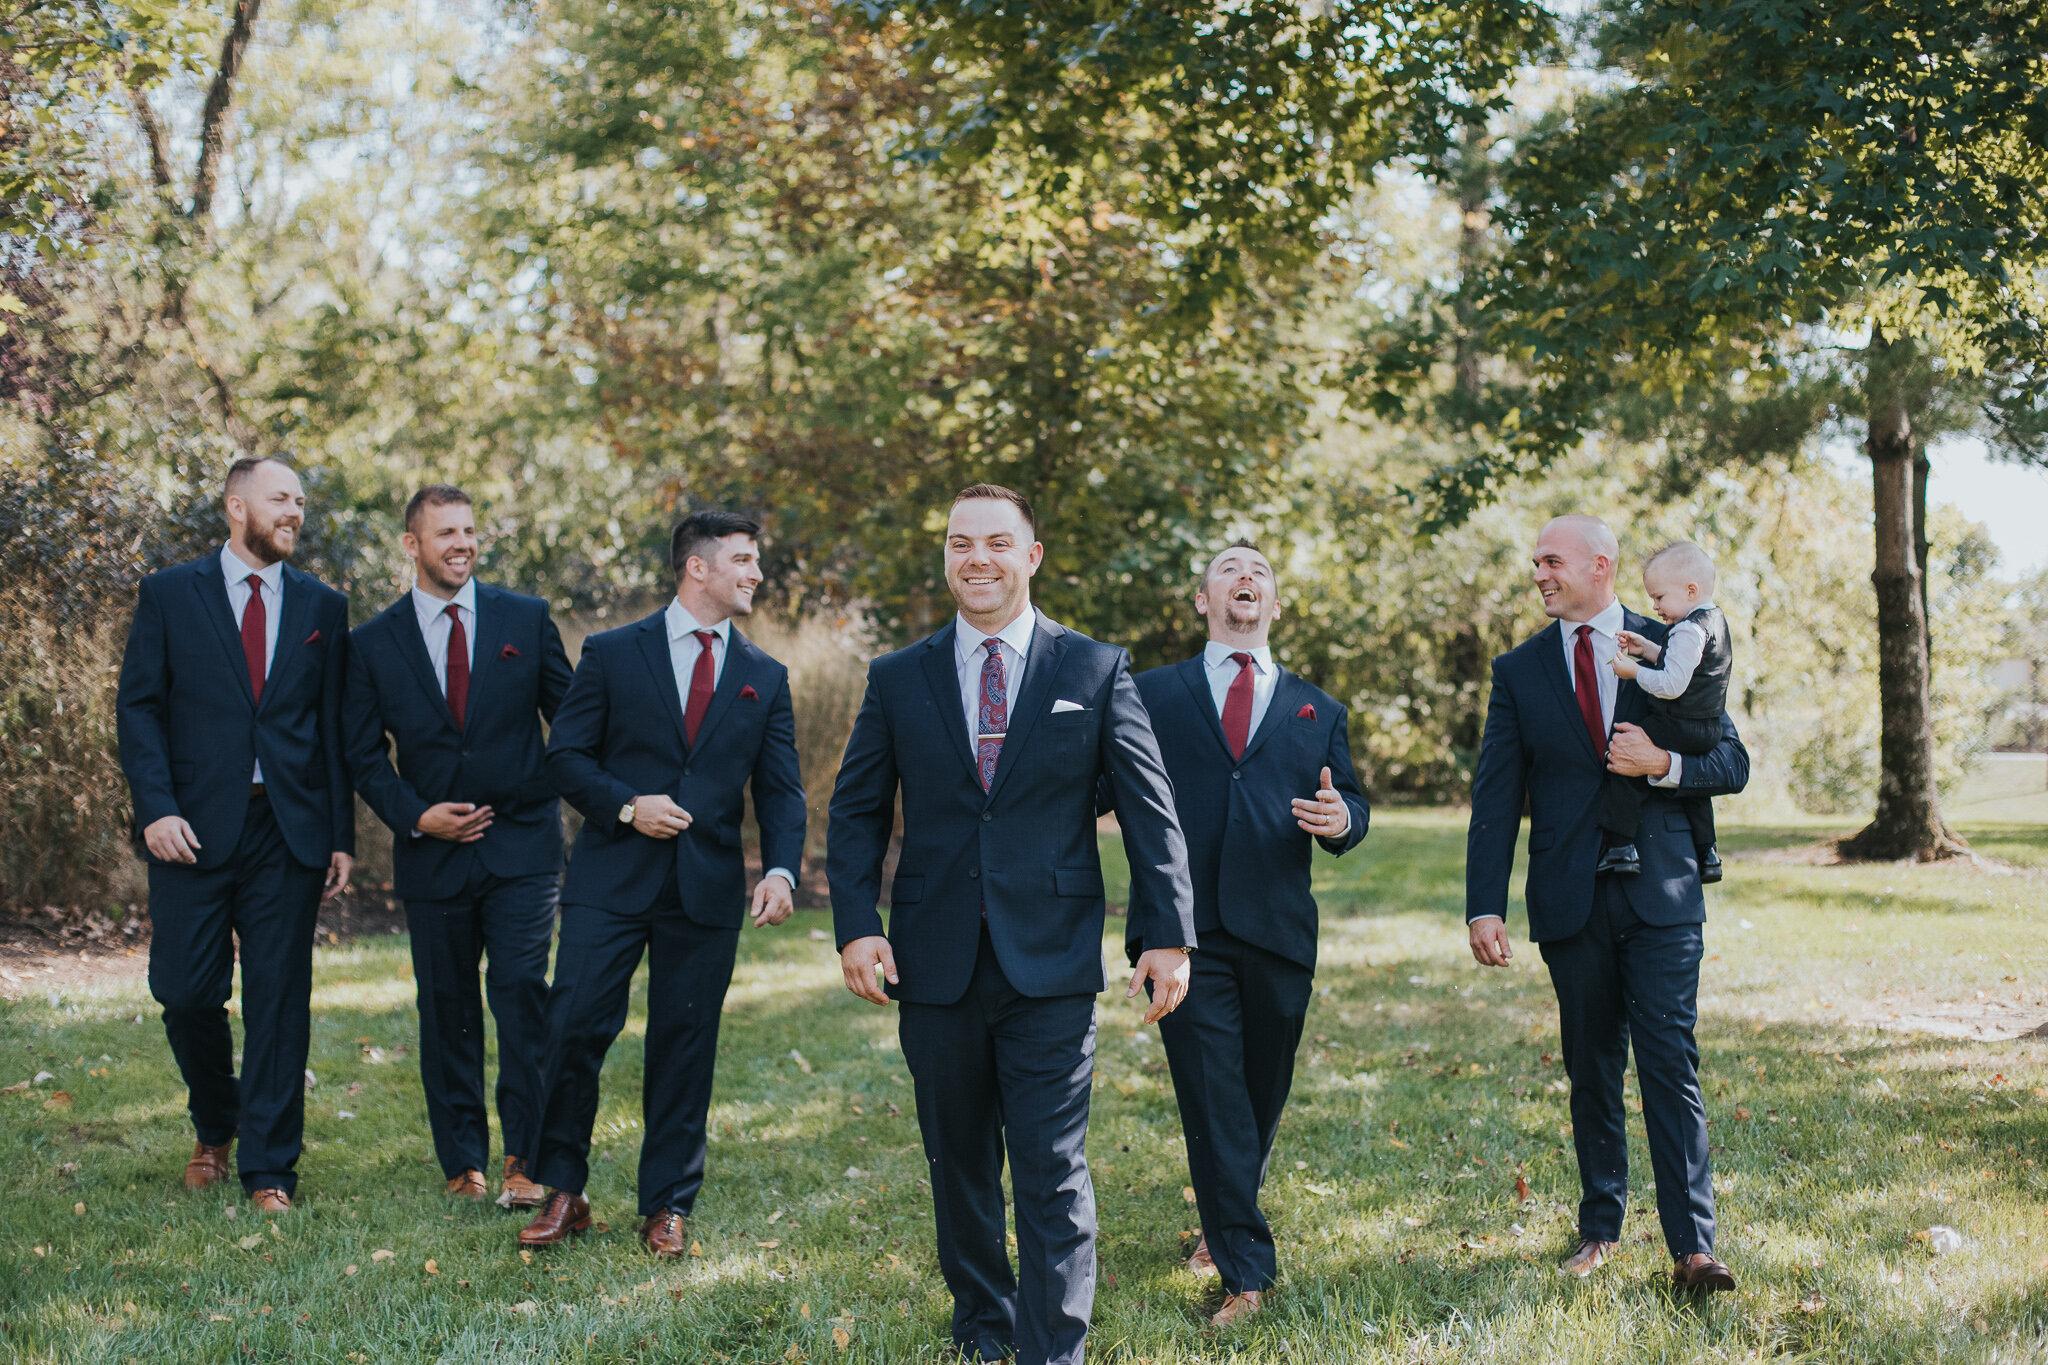 Pattison Park Wedding in Cincinnati, Ohio by Bare Moments Photography Cincinnati Wedding Photographer